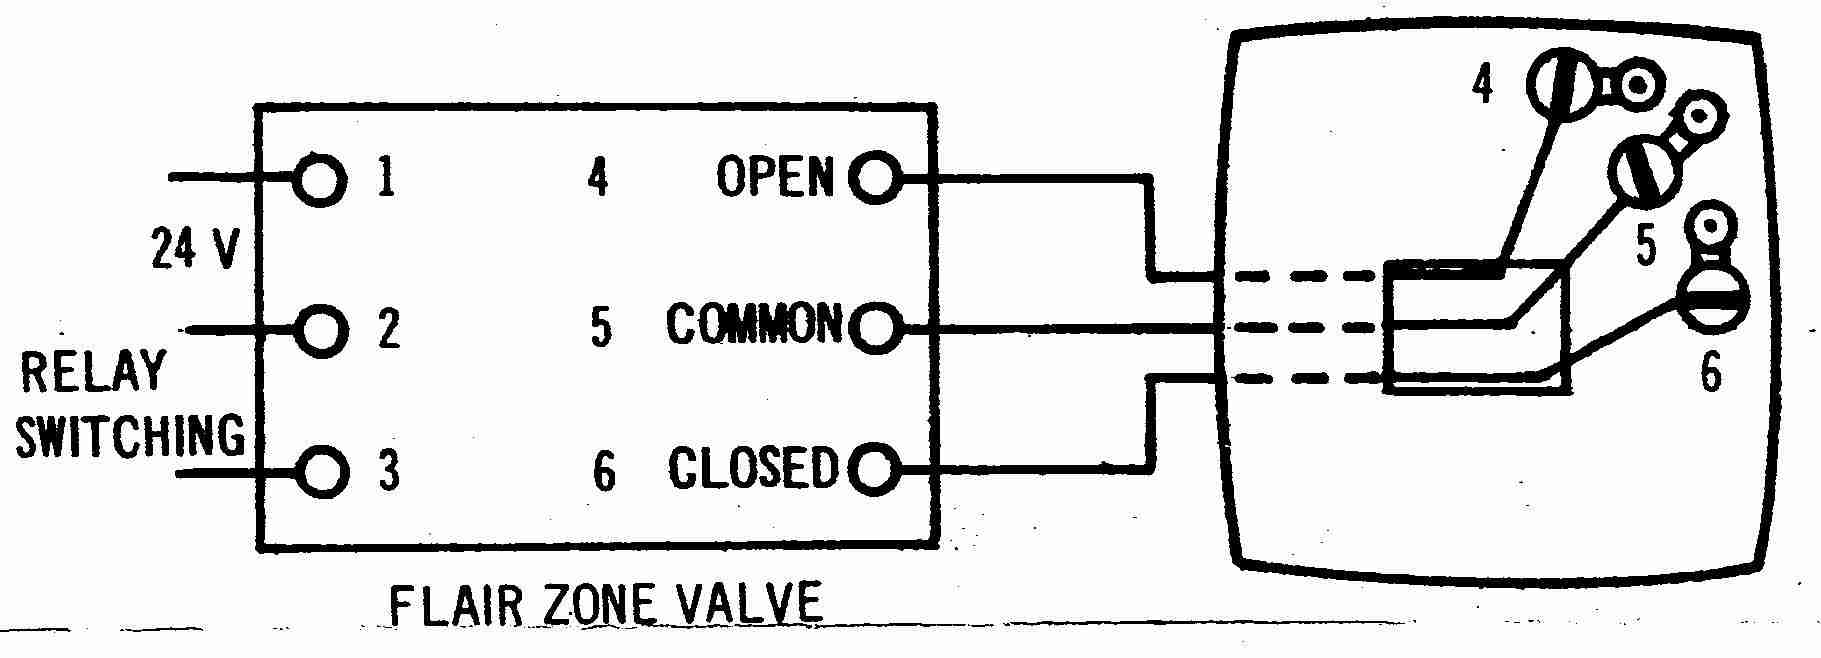 Flair3w_001_DJFc2 zone valve wiring installation & instructions guide to heating honeywell gas valve wiring diagram at n-0.co